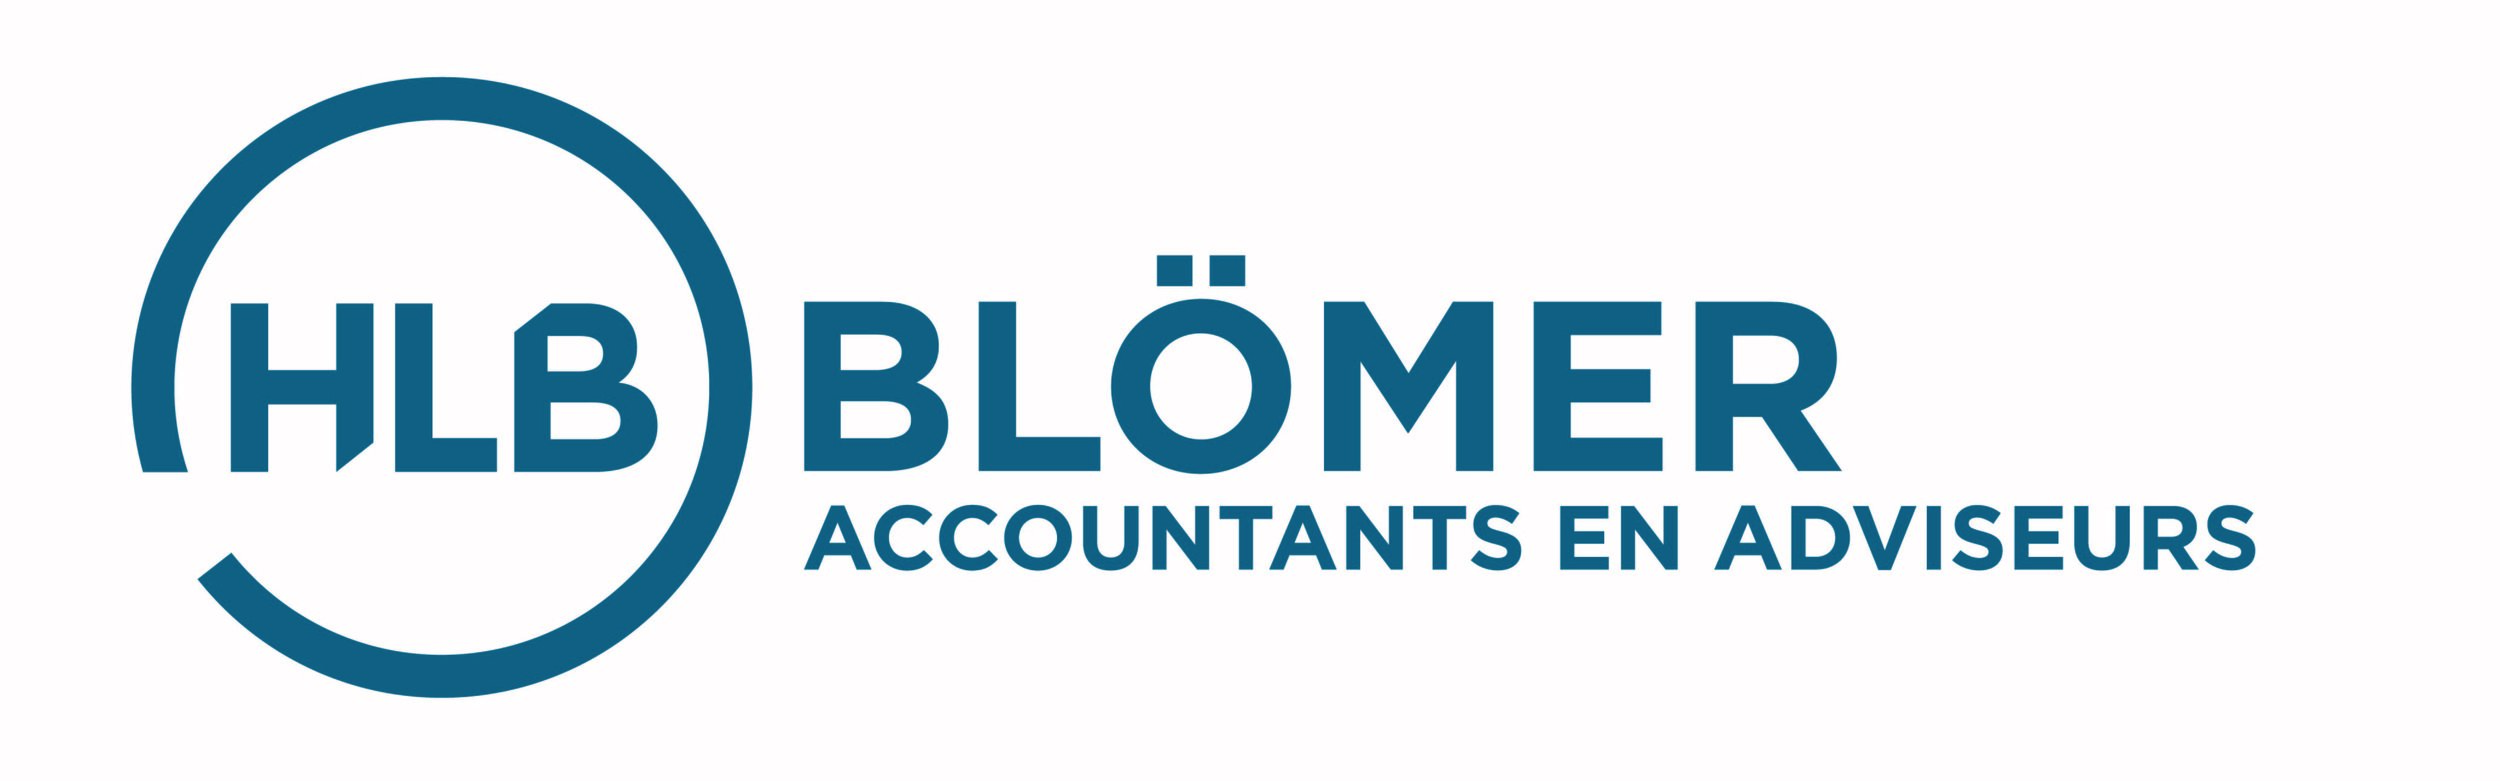 HLB BLÖMER - ACCOUNTANTS EN ADVISEURS-01.jpg